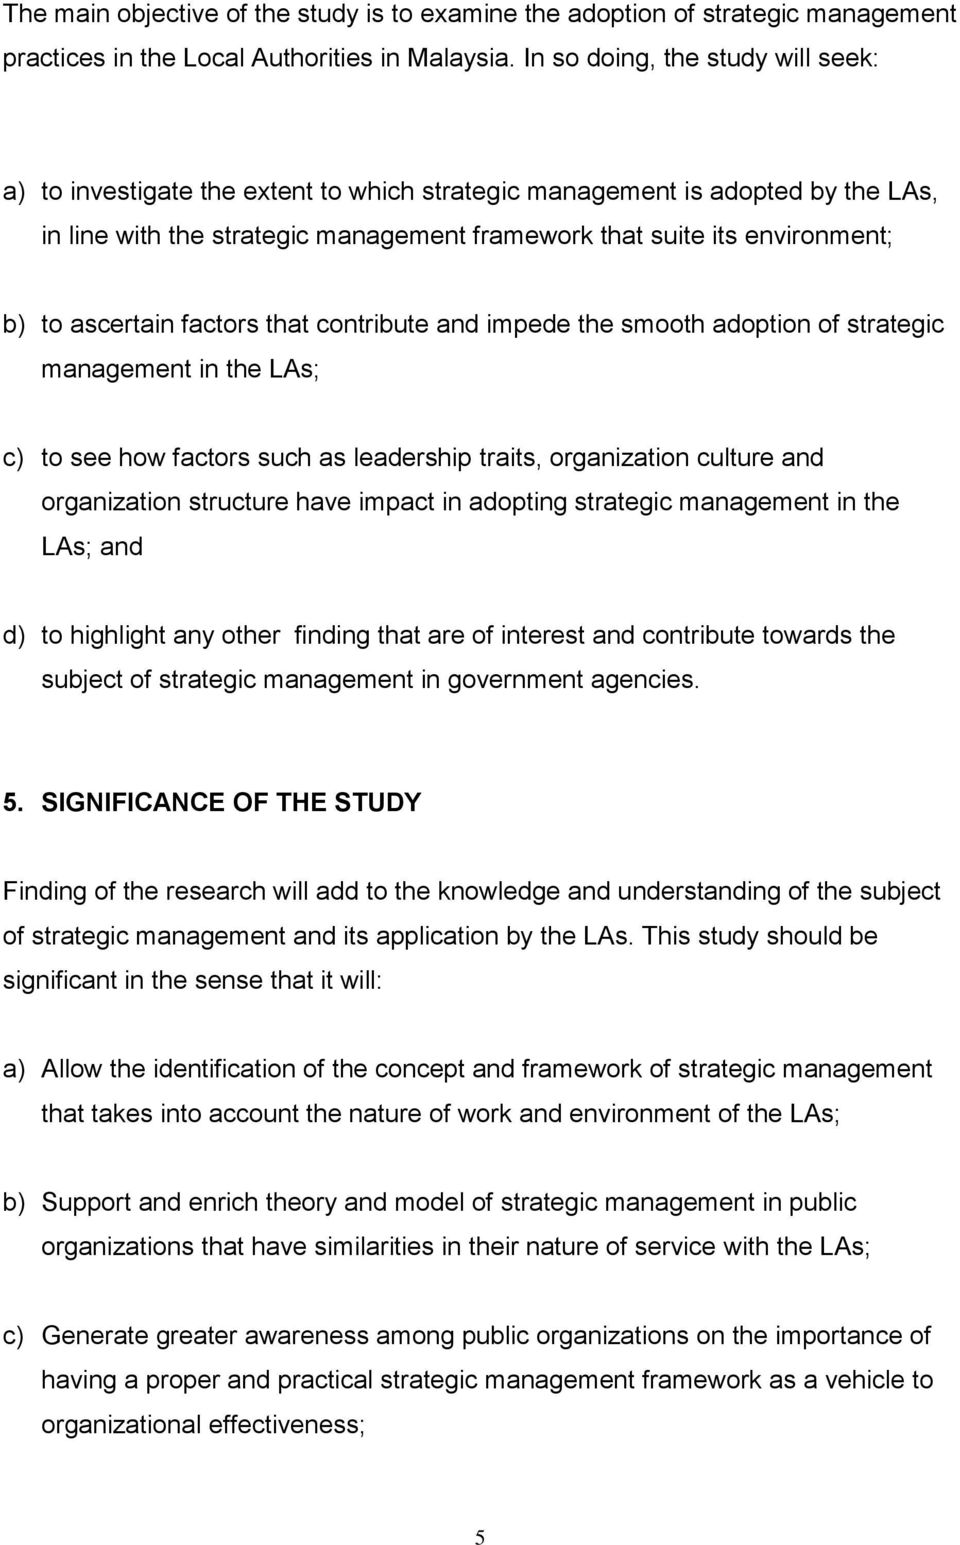 ascertain factors that contribute and impede the smooth adoption of strategic management in the LAs; c) to see how factors such as leadership traits, organization culture and organization structure